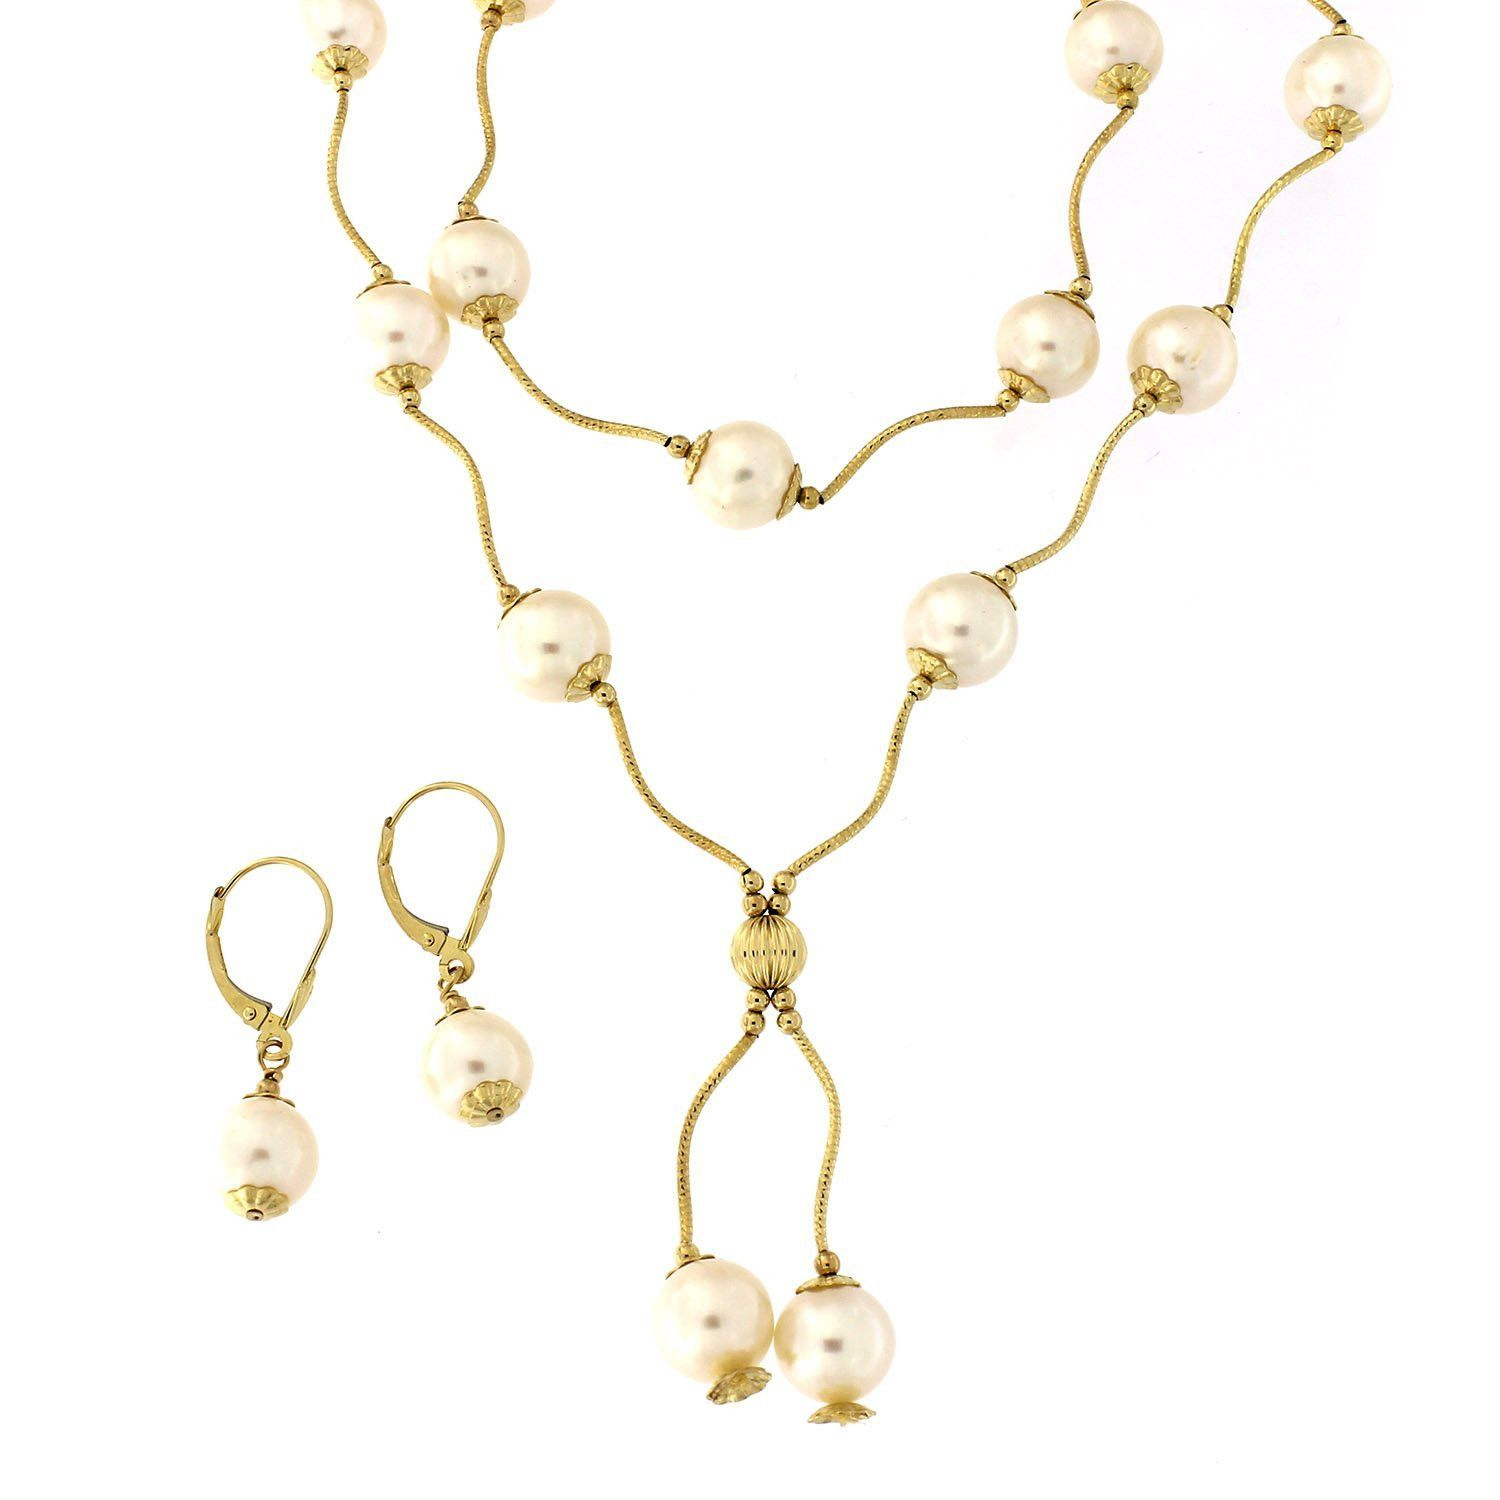 K yellow gold round white freshwater cultured pearls shell